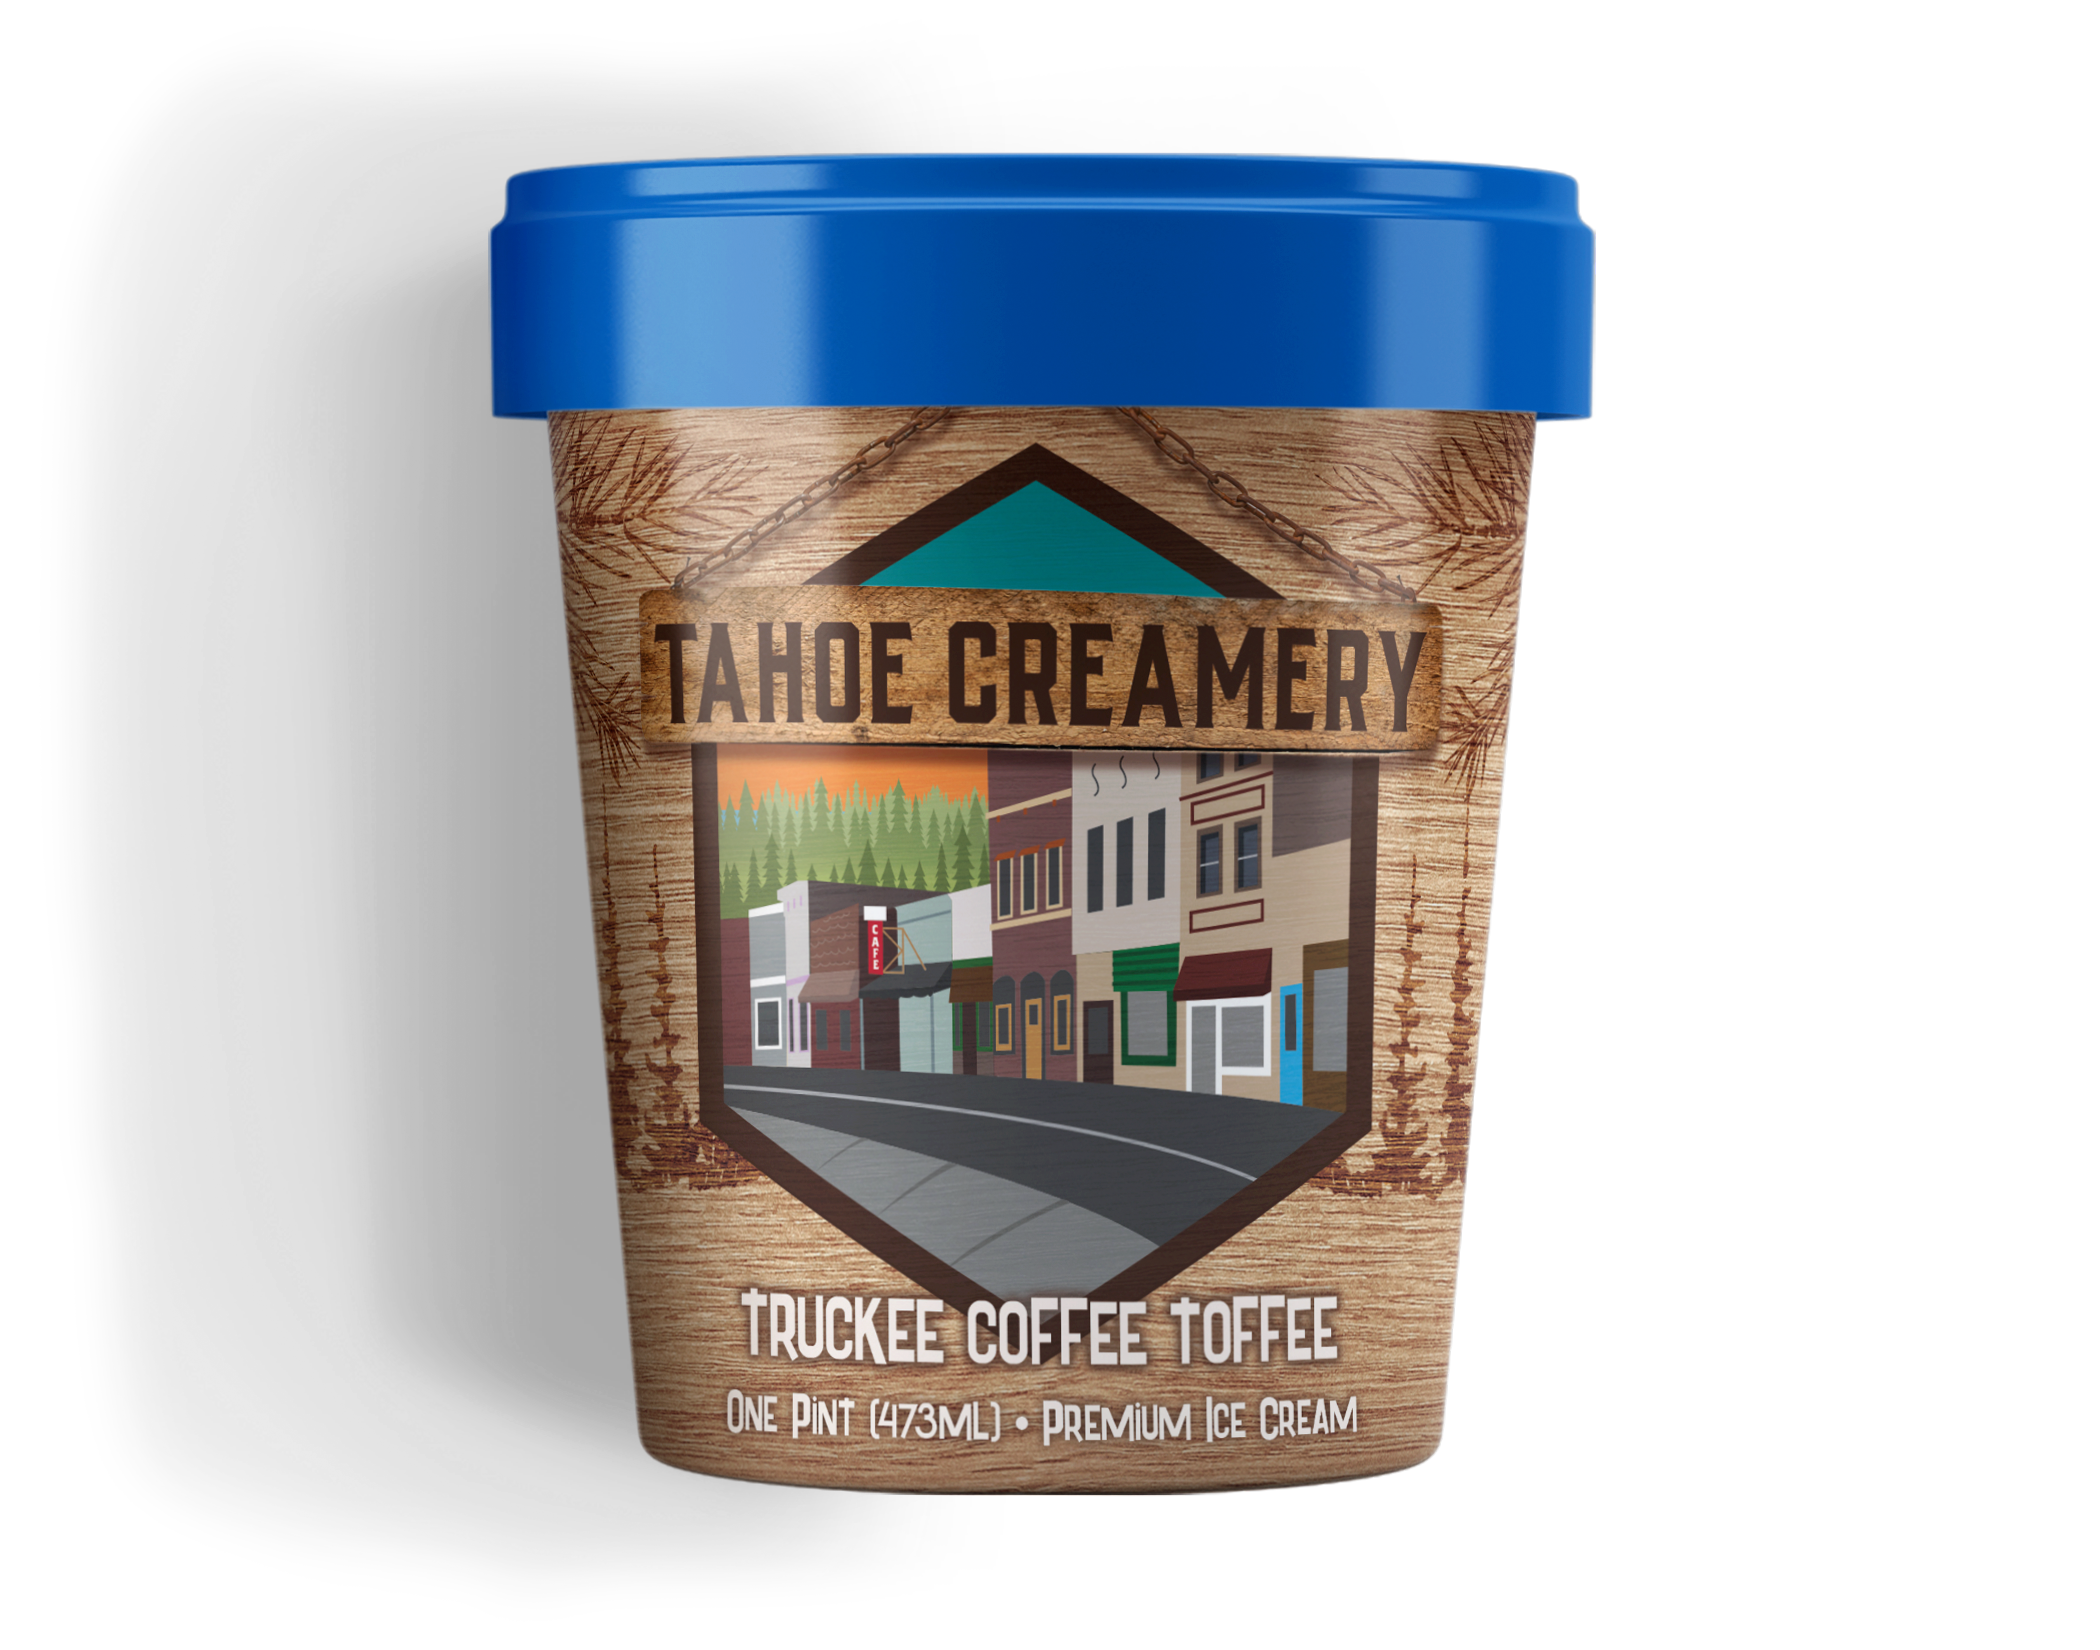 Truckee Coffee Toffee